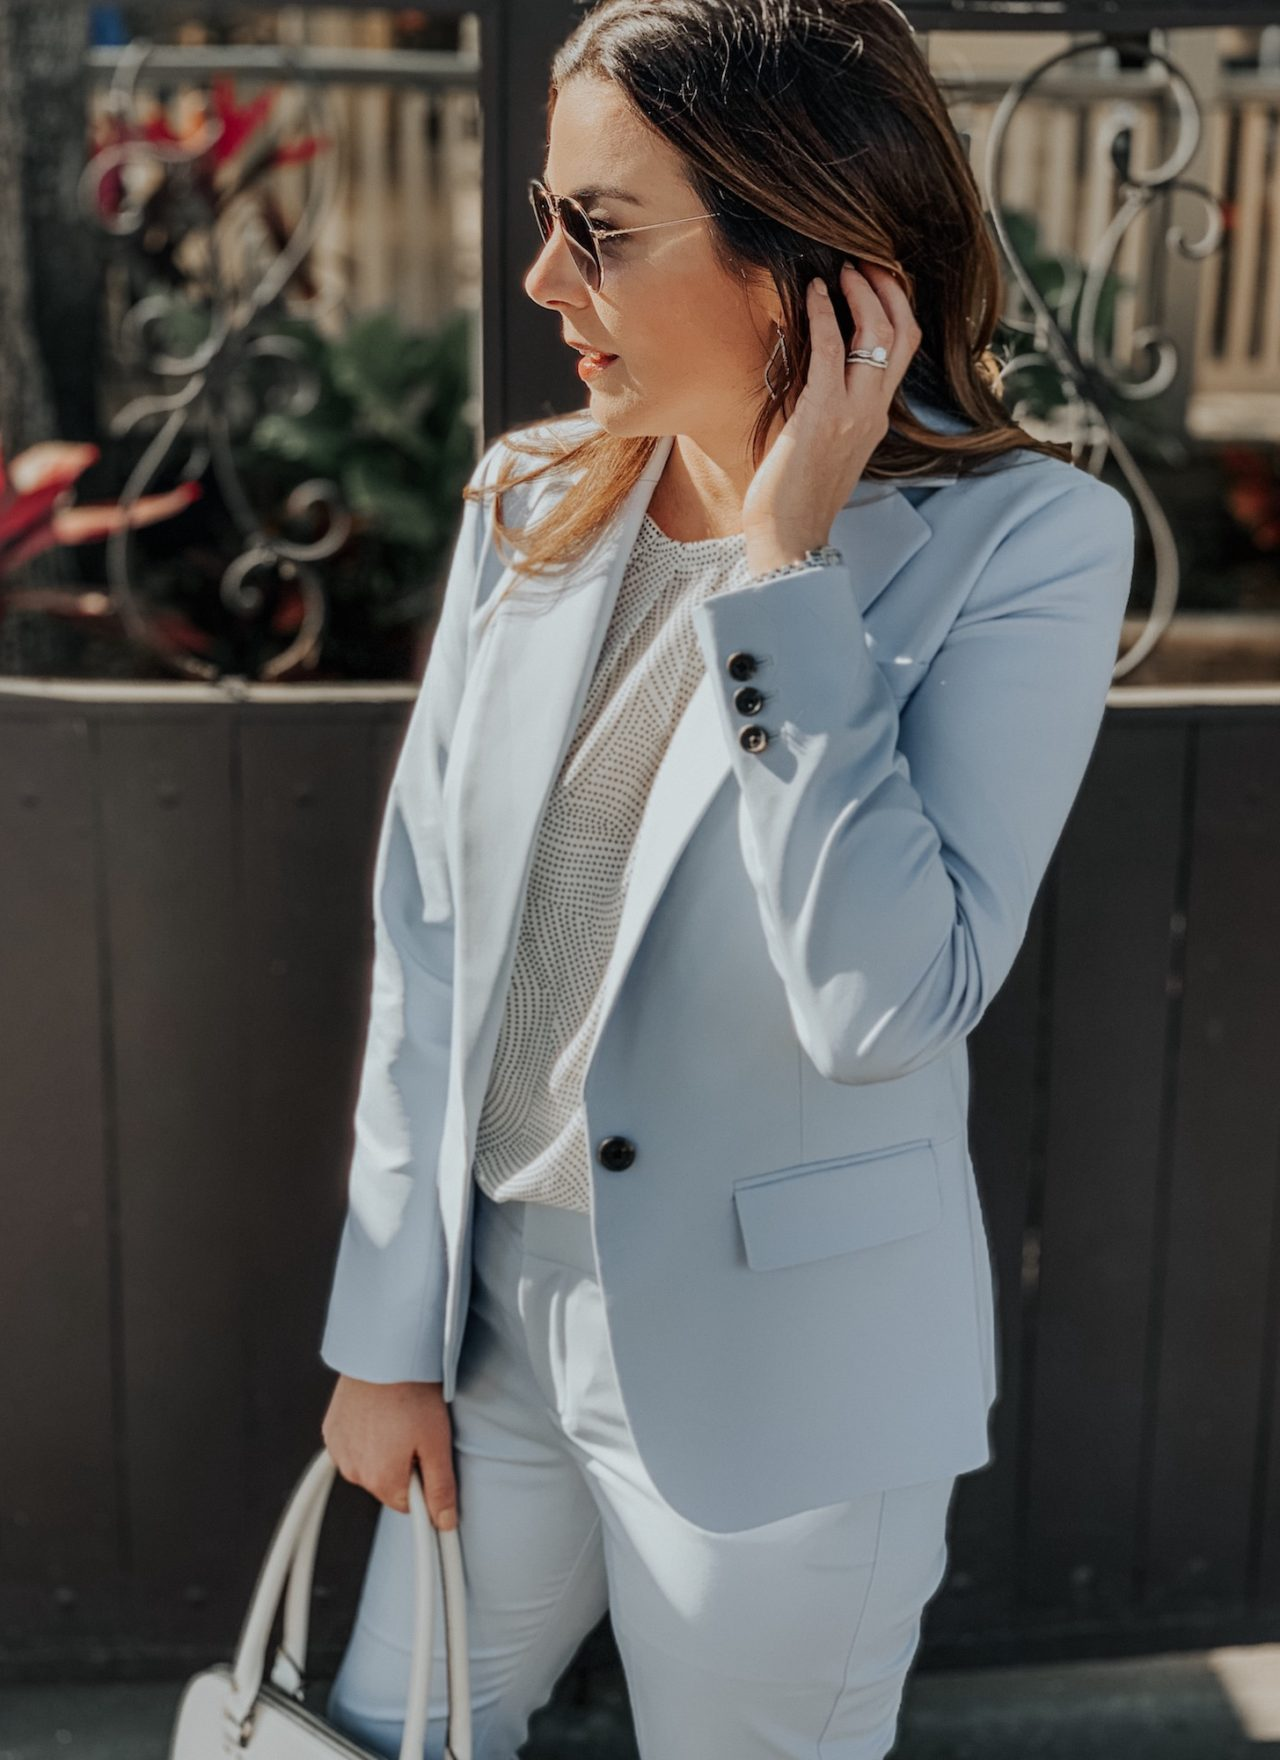 An Affordable Spring Suit from Target